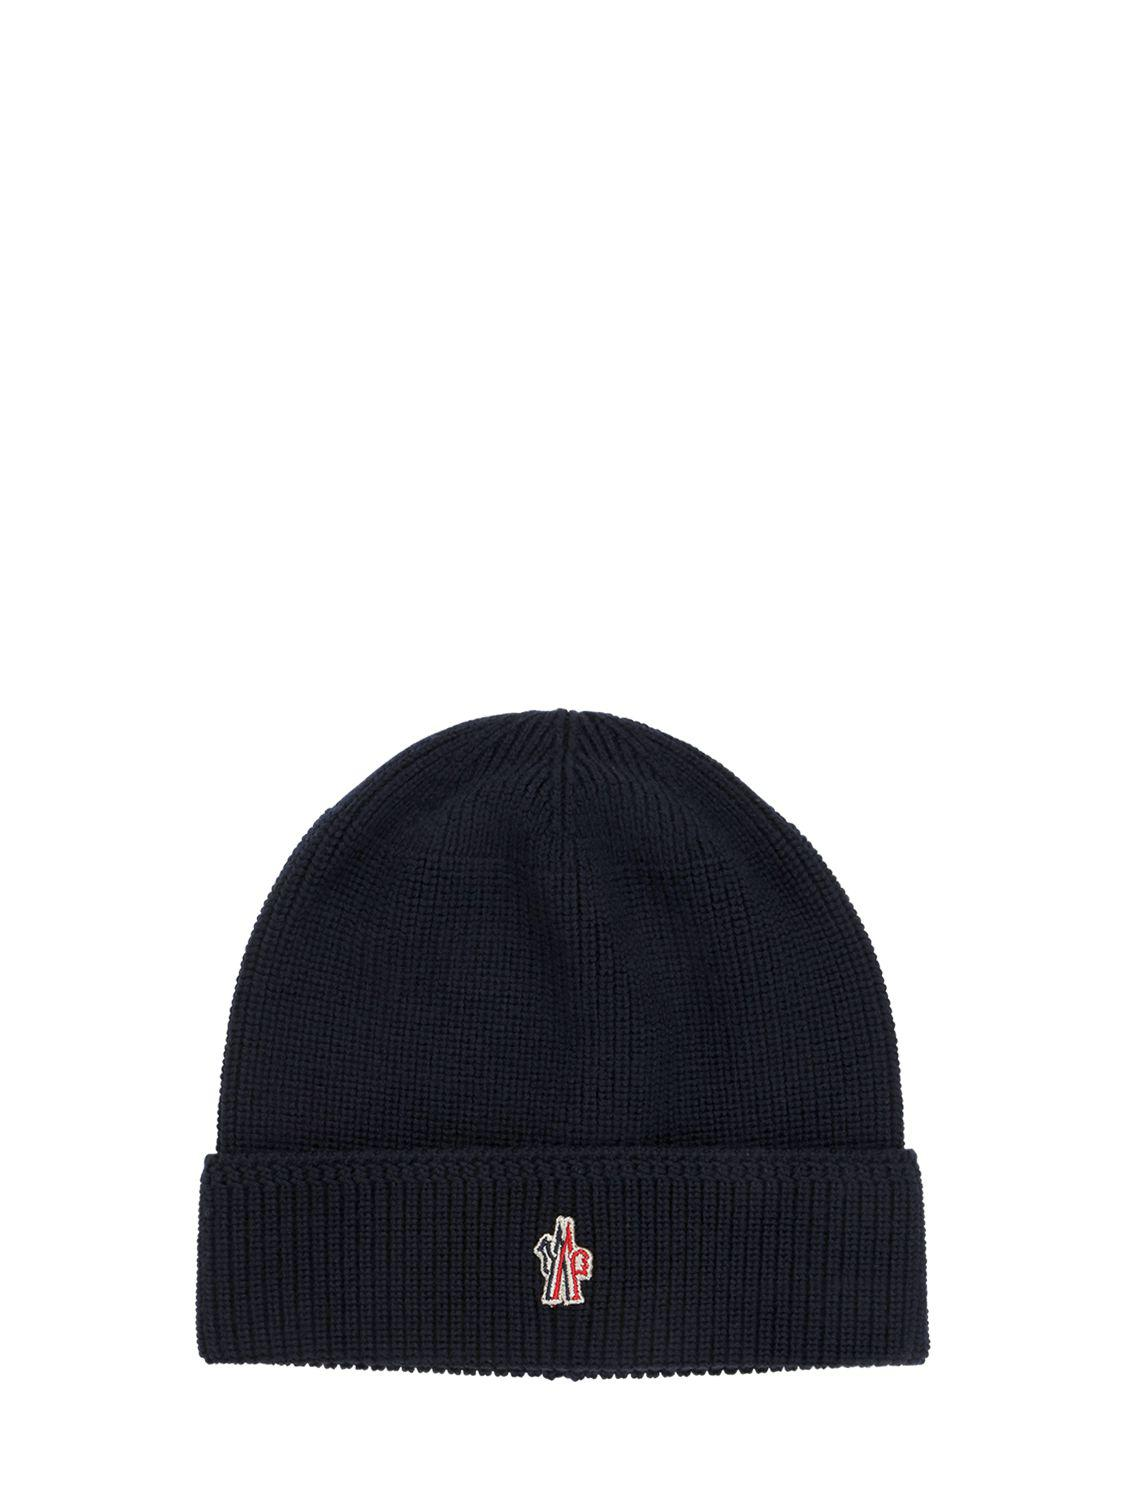 a25784a9ffc Lyst - Moncler Grenoble Logo Patch Wool Beanie Hat in Blue for Men